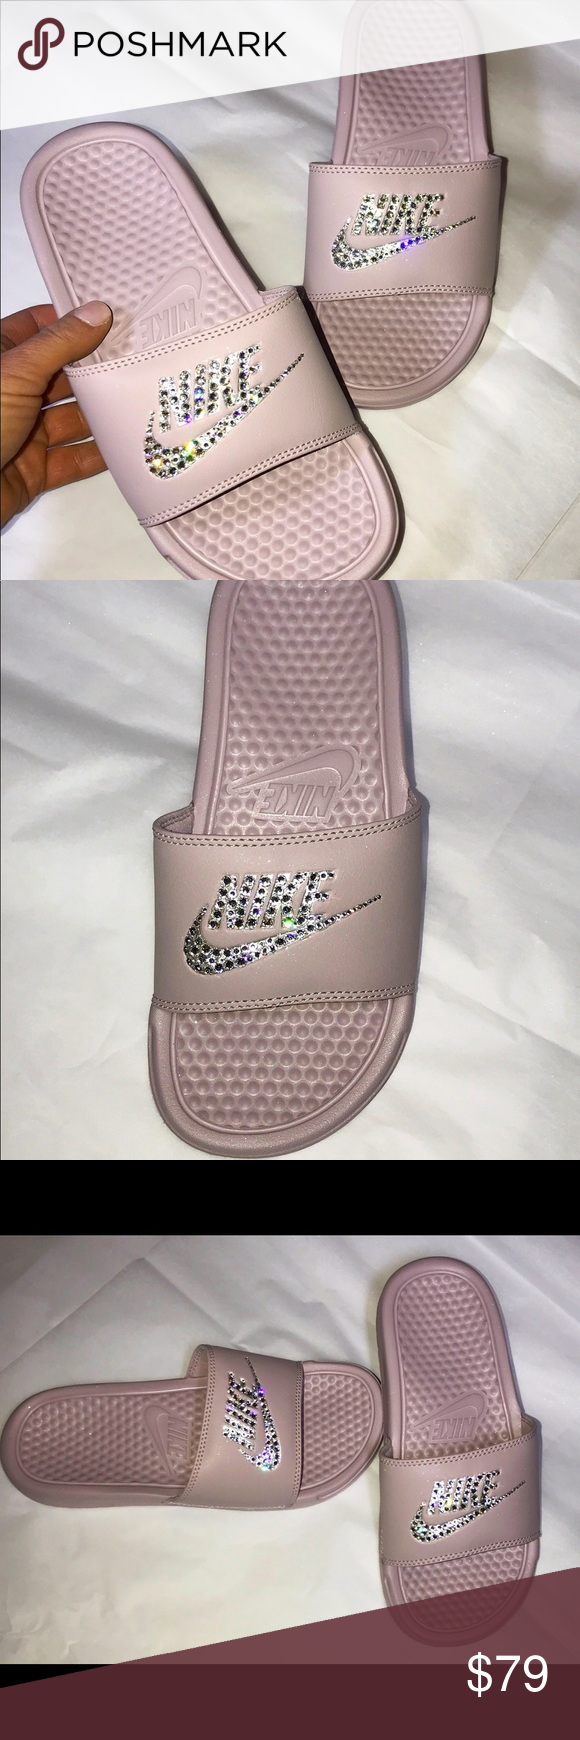 Nike Benassi slides in Nude Pink Swarovski detail Nike Benassi JDI slides  size 6 in Rose Metallic Silver with hand placed Swarovski crystals in clear. 6cf49a140010